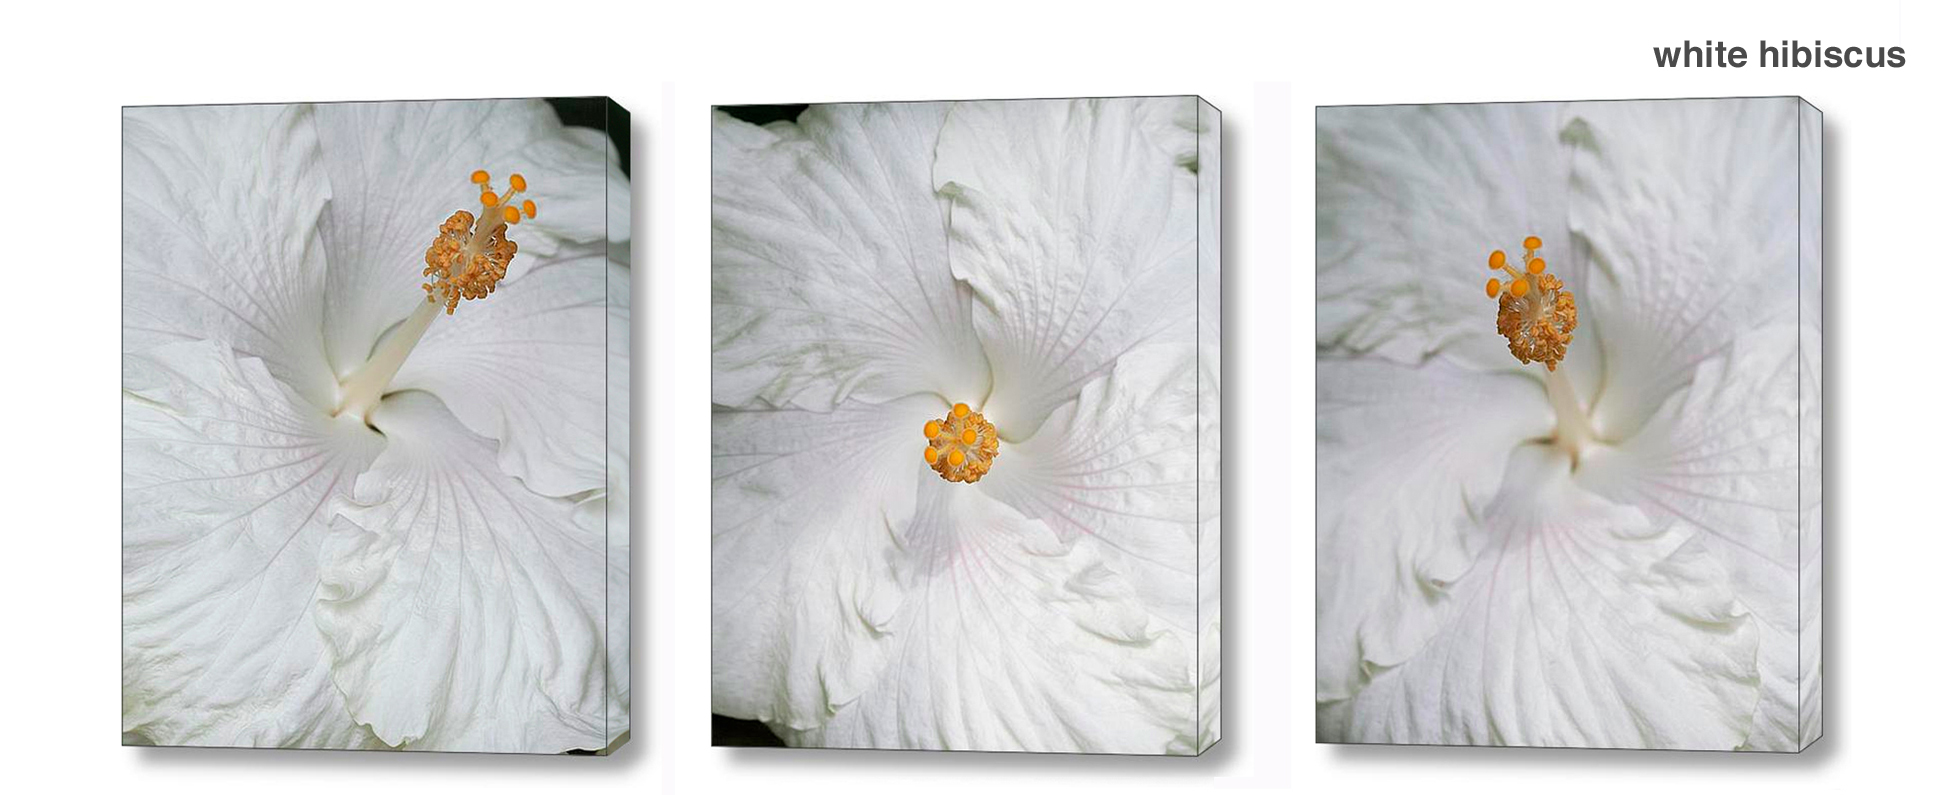 white hibiscus series - Floral Series Wall Decor Macro Photography Matted & Giclée Canvas Prints